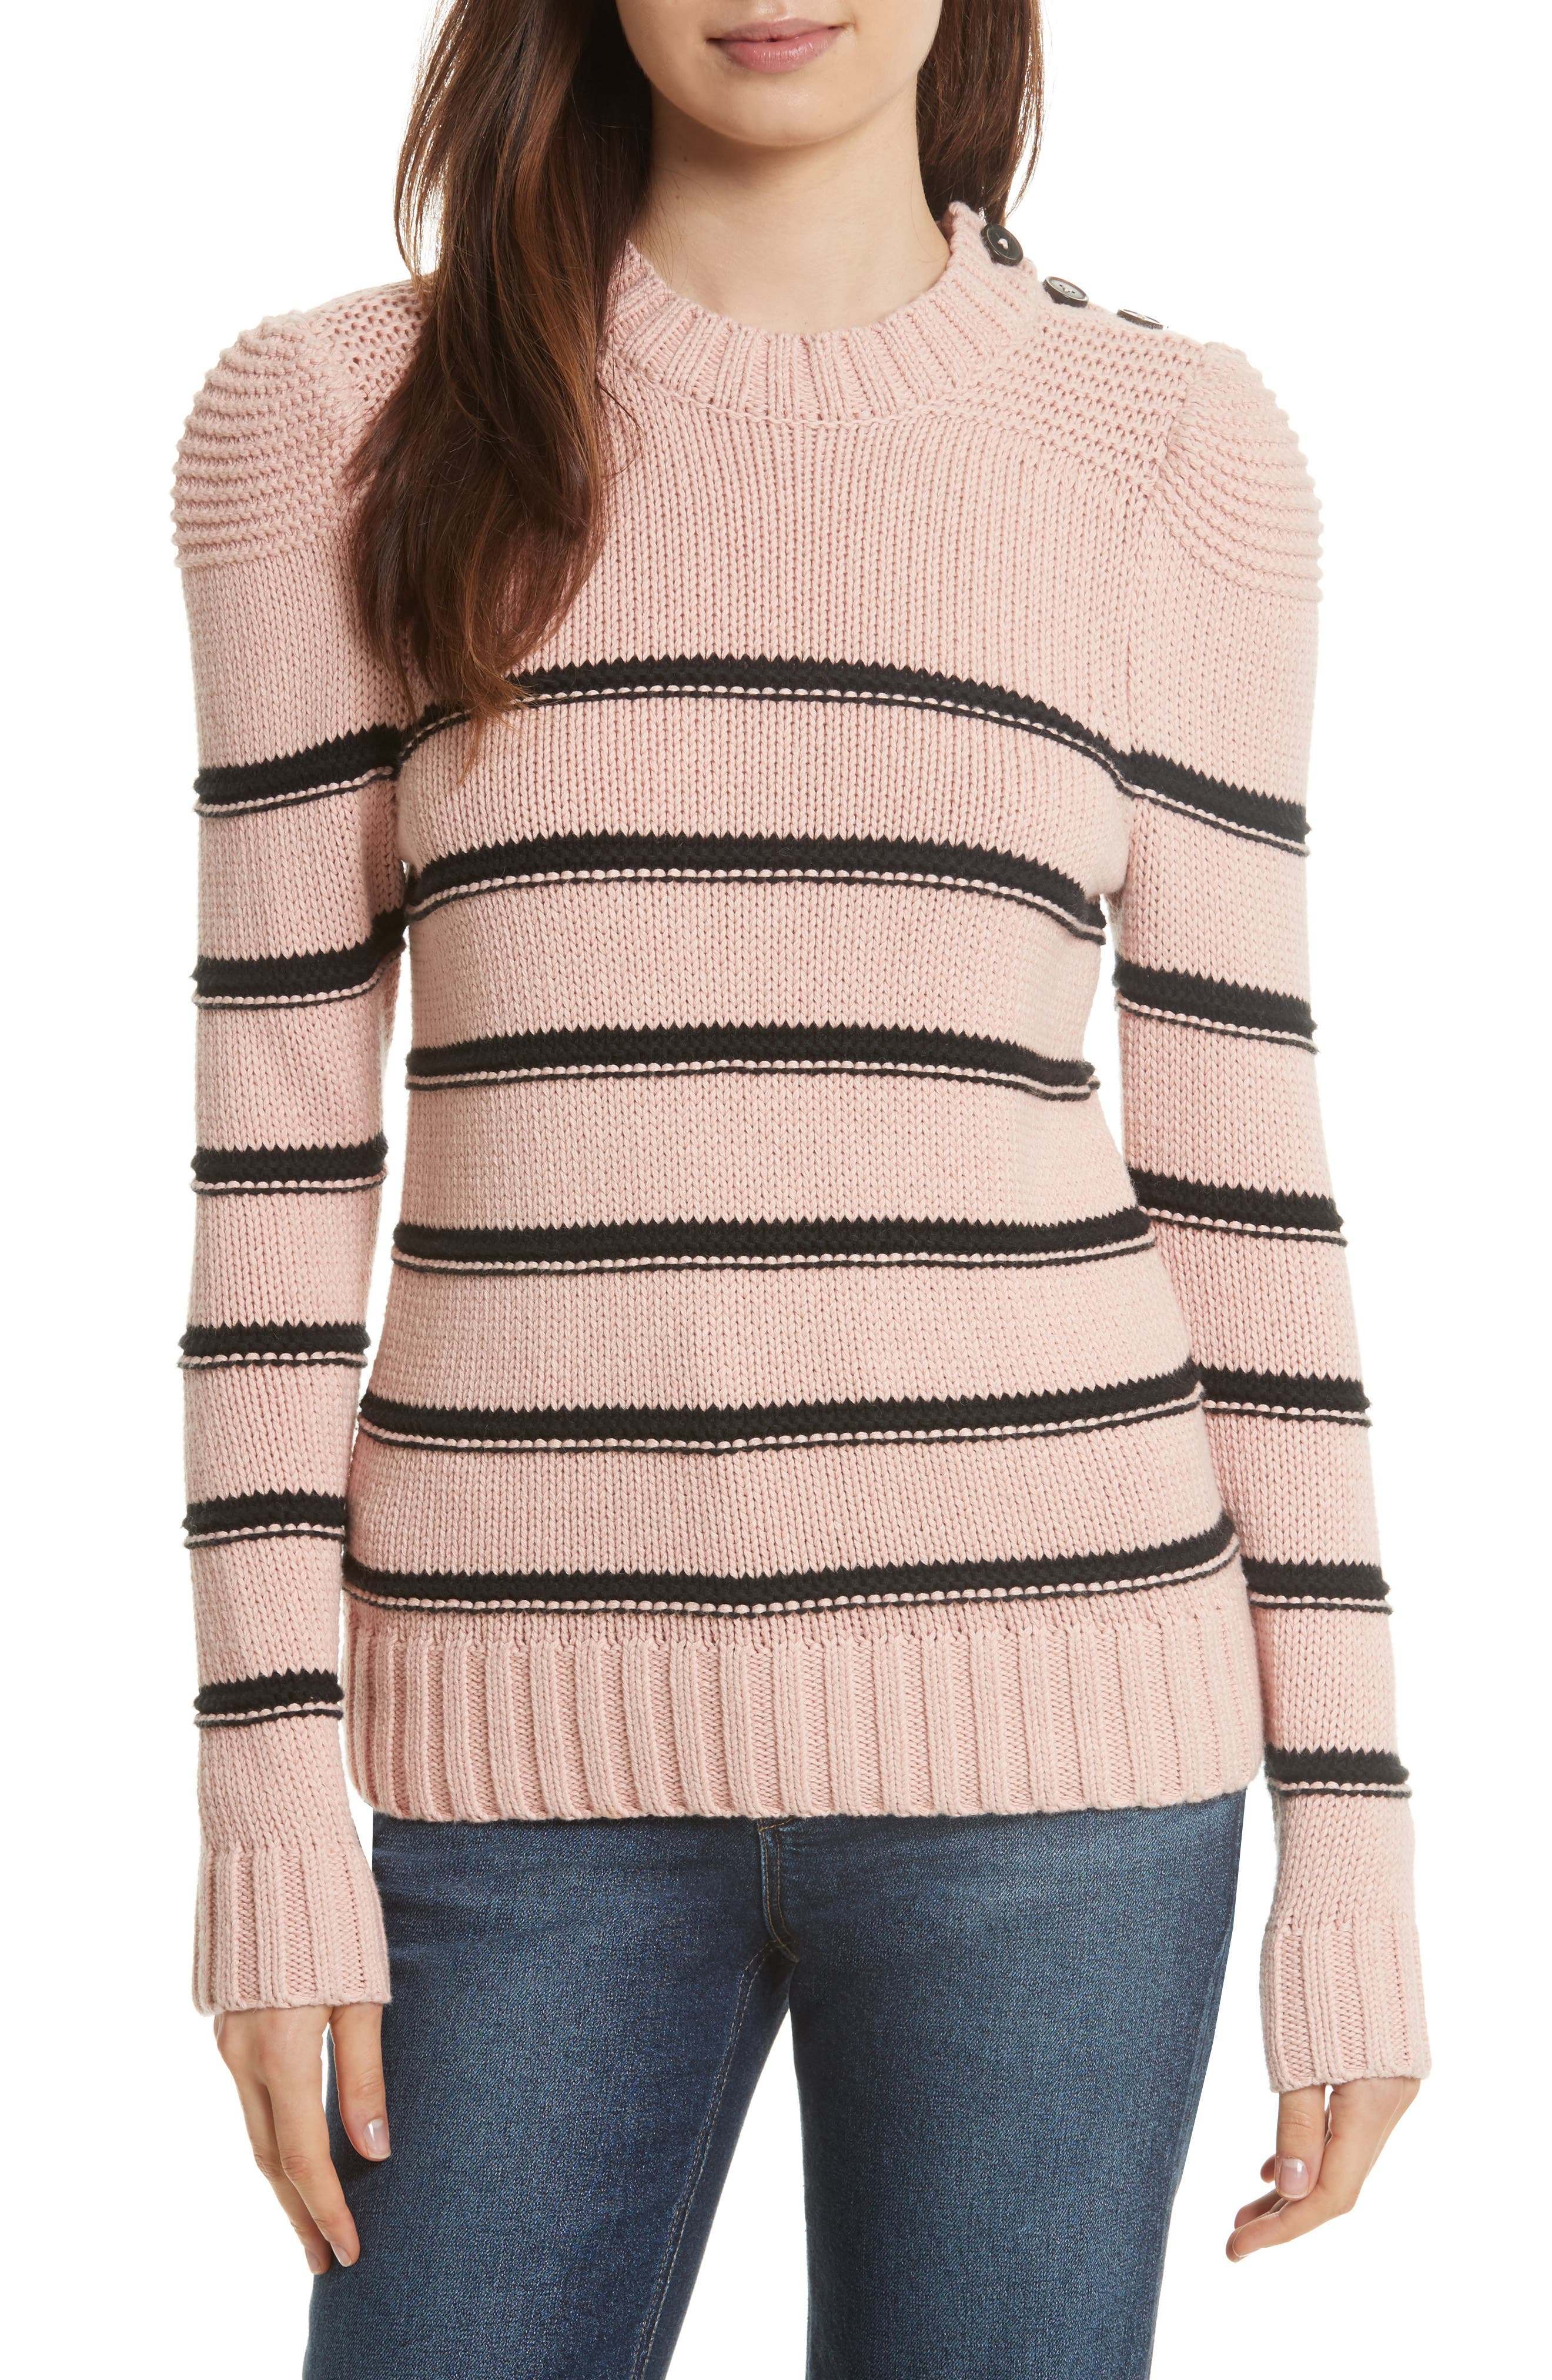 LA VIE REBECCA TAYLOR Stripe Cotton & Merino Wool Sweater